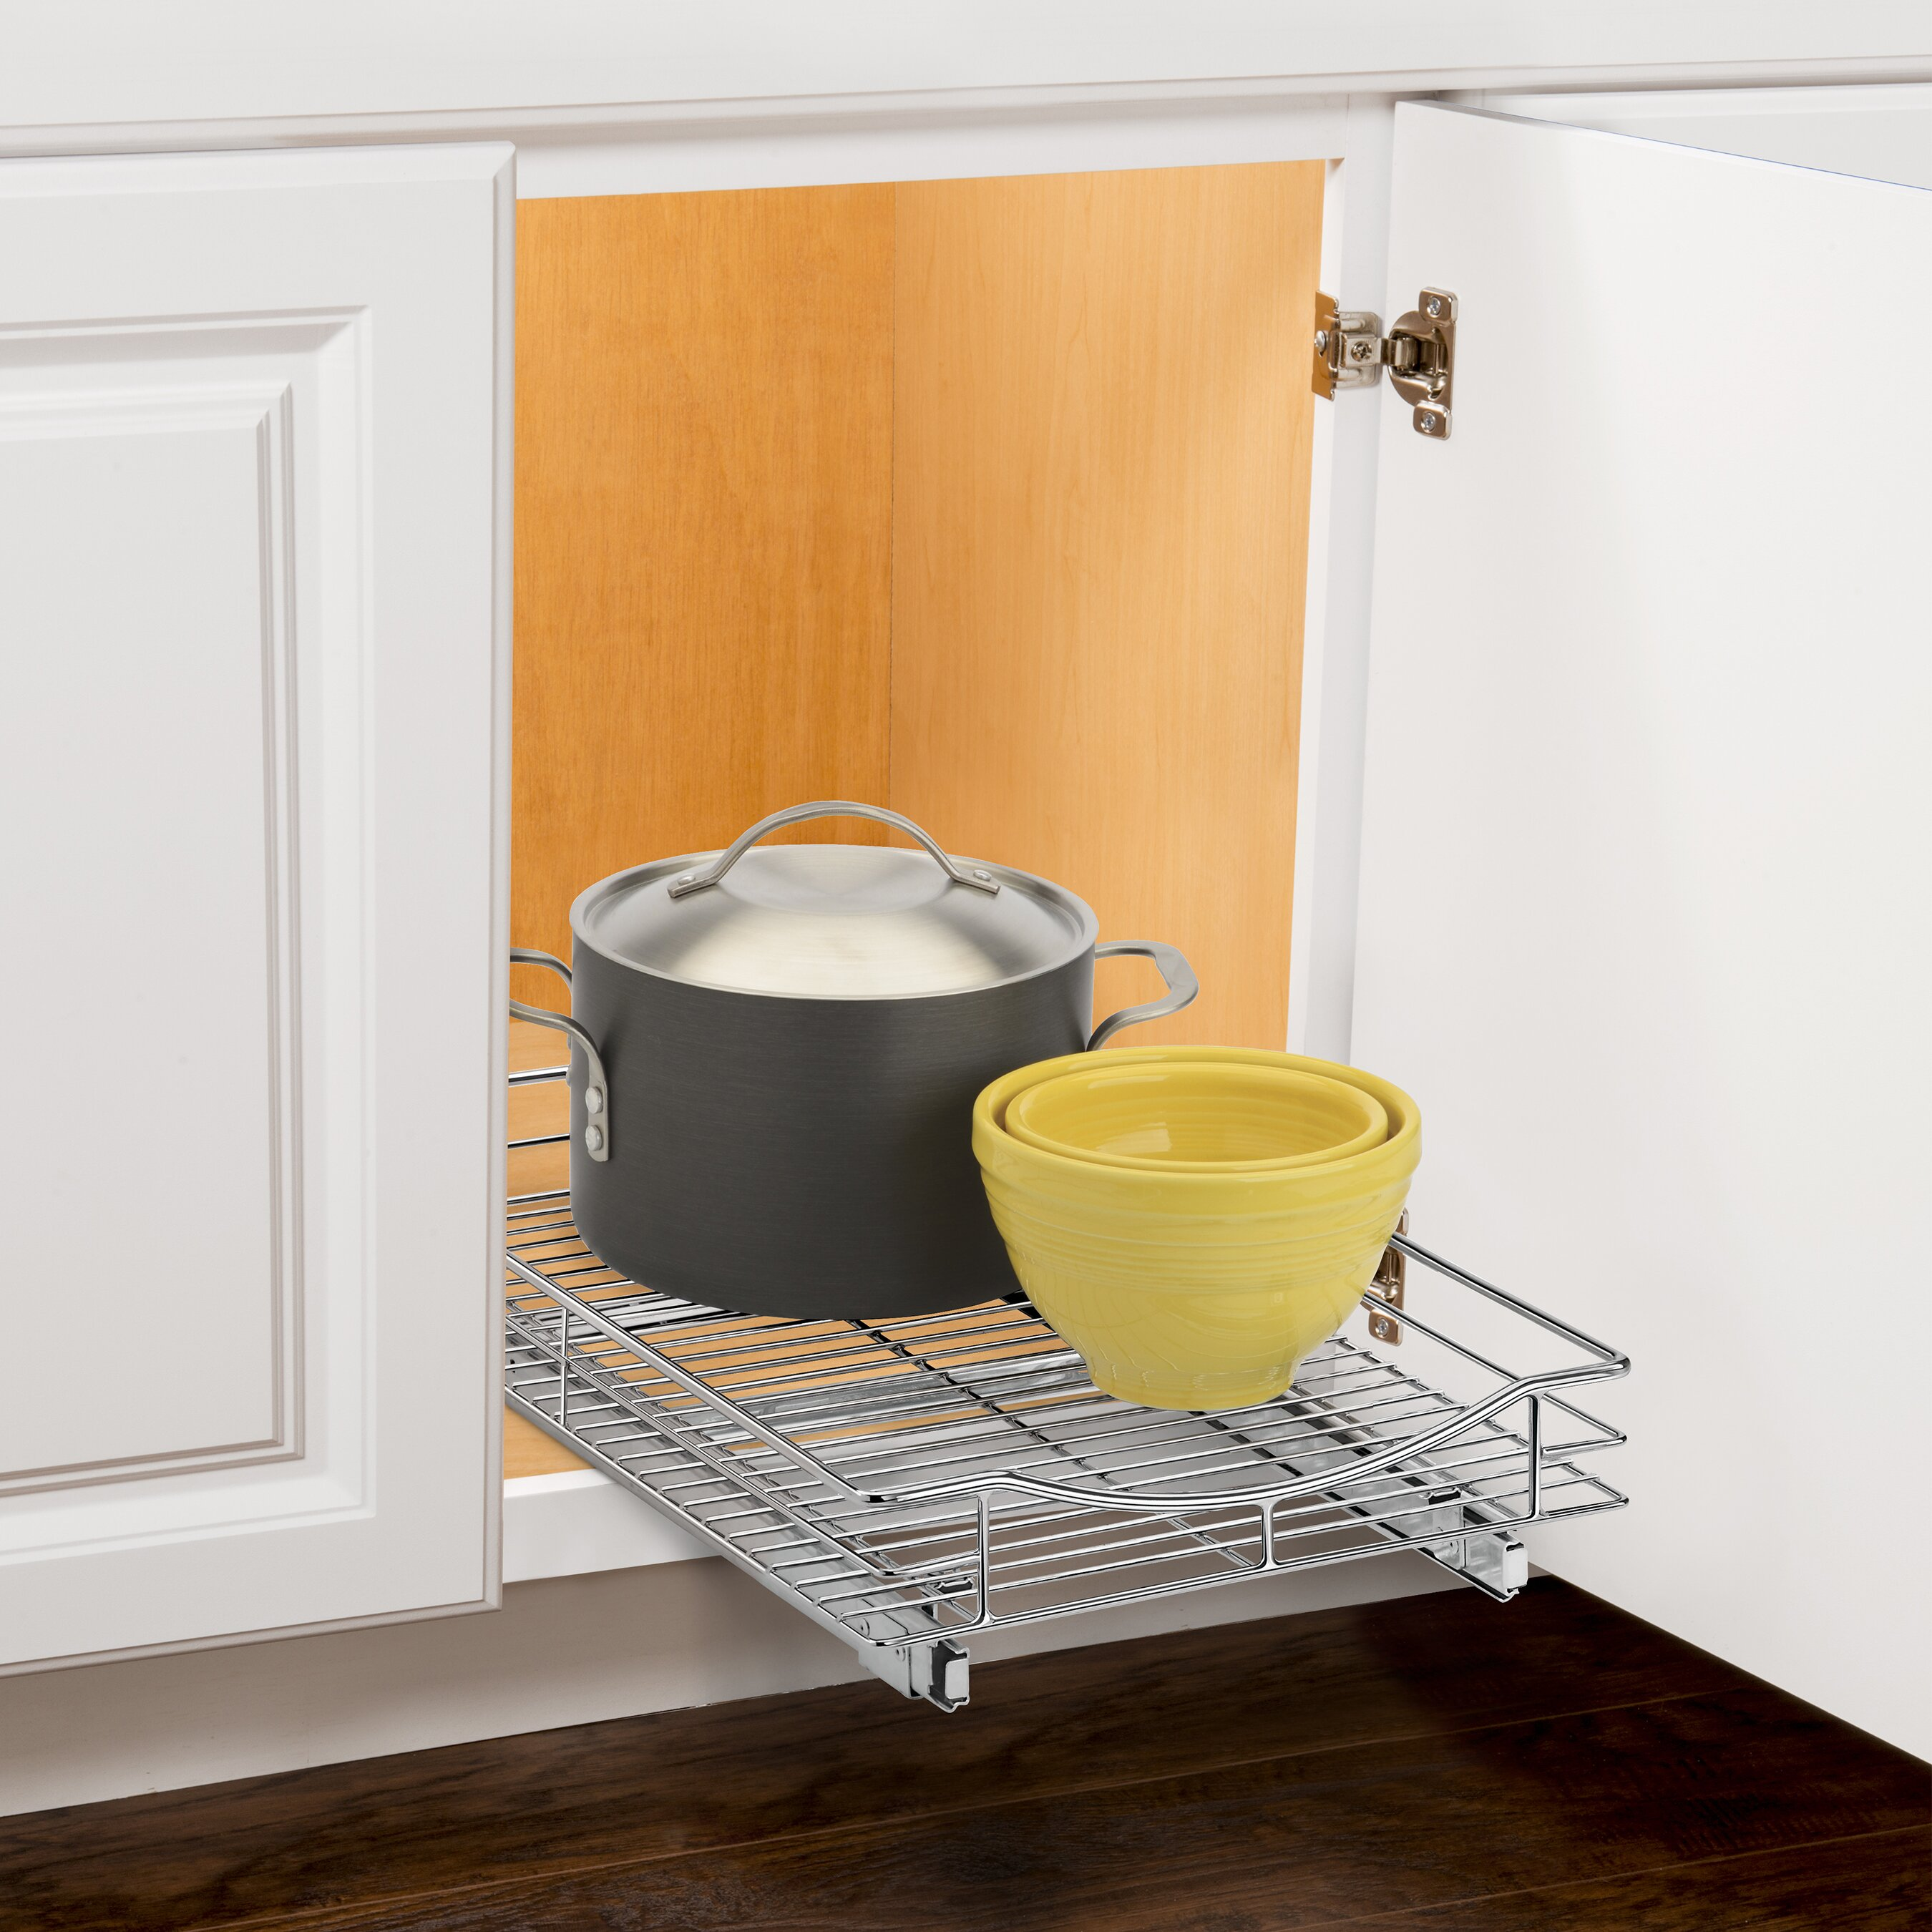 Lynk Roll Out Double Shelf: Lynk Professional Roll Out Cabinet Organizer